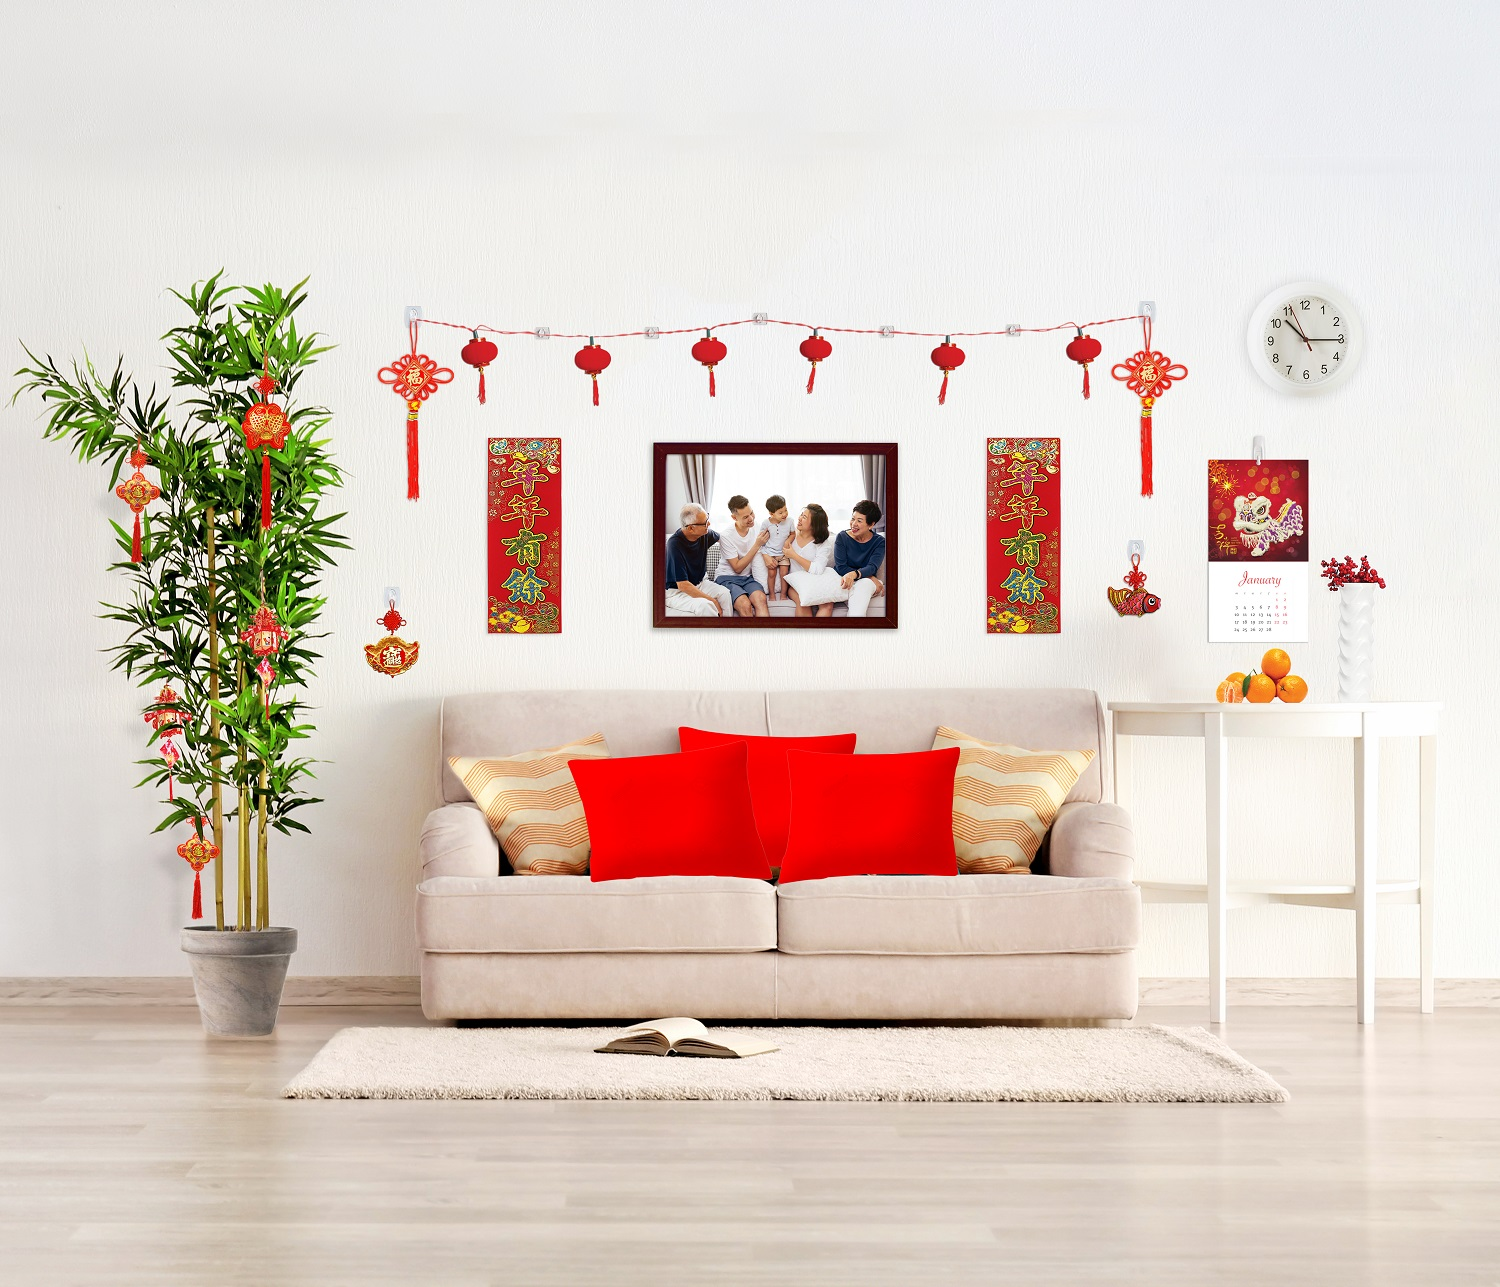 Useful Tips To Prepare Your Home For Cny